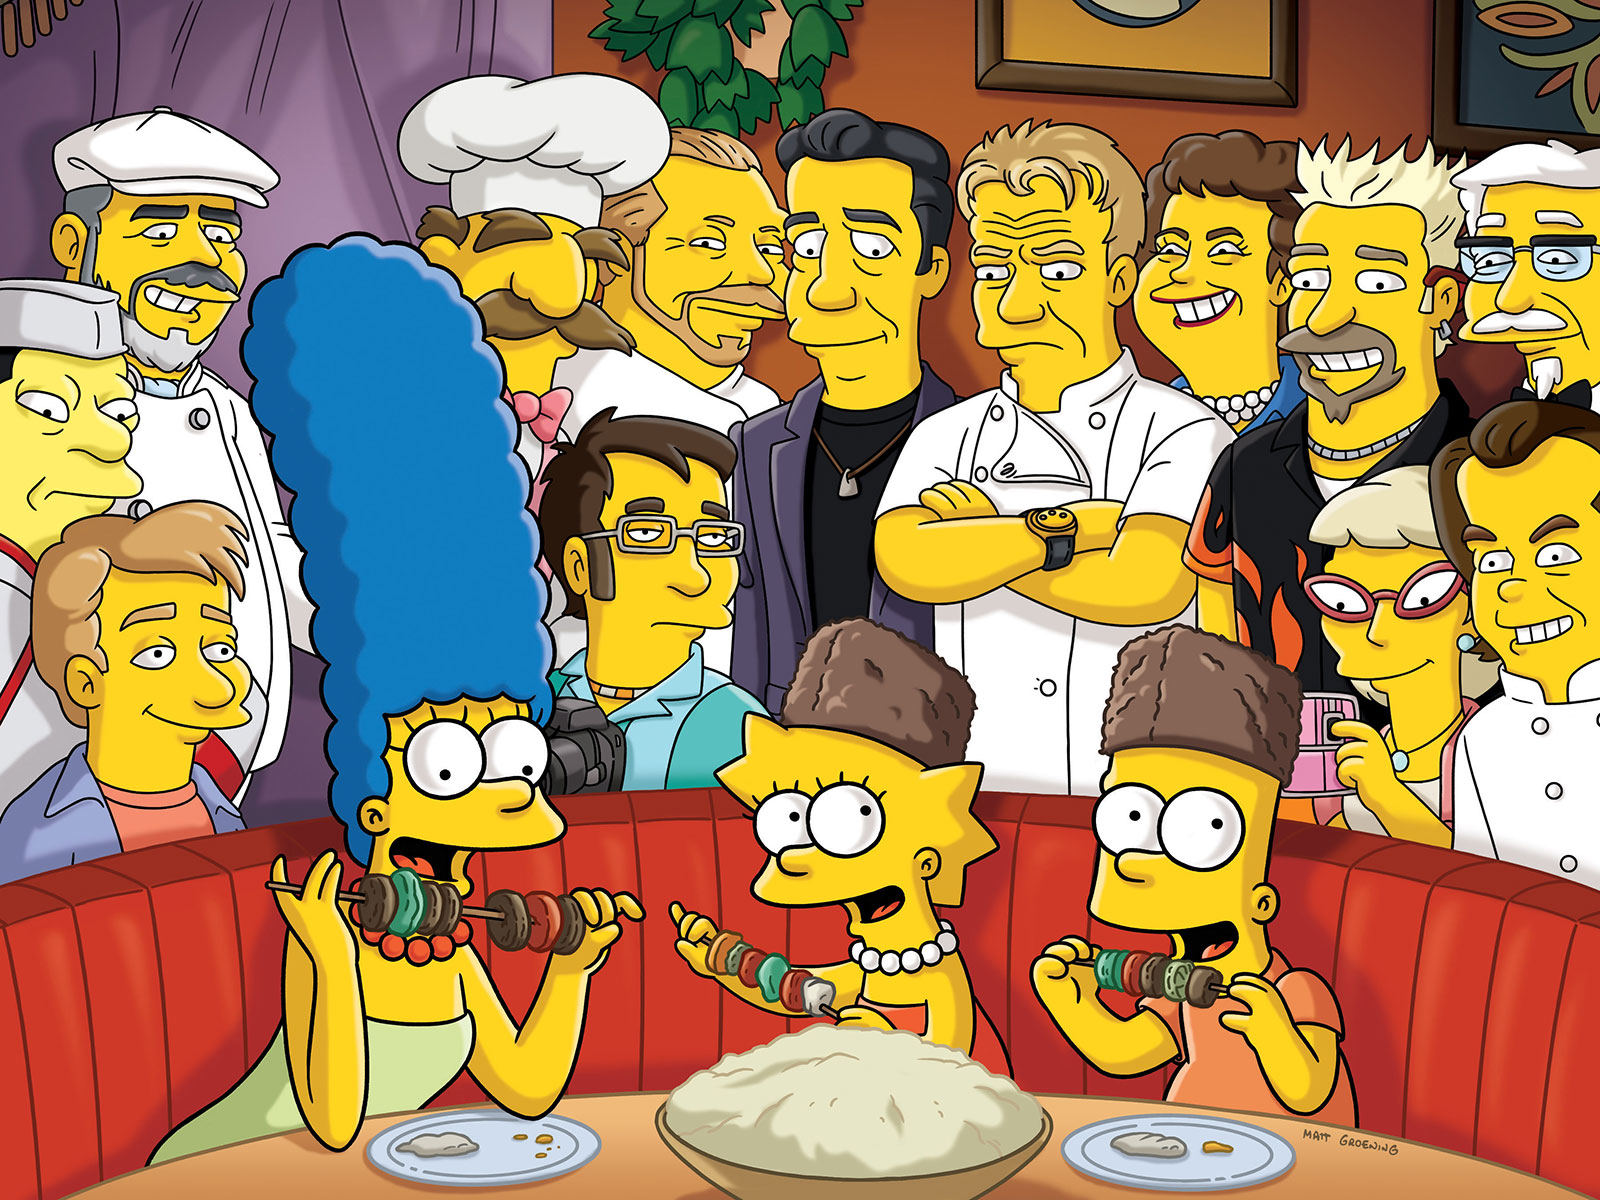 a personal review of the simpsons Part 1 of my lego simpsons minifigures review takes a closer look at homer, marge, bart, lisa, maggie, grampa simpson, ned flanders and milhouse find out what i thought about the first 8 minifigures and how to identify them.